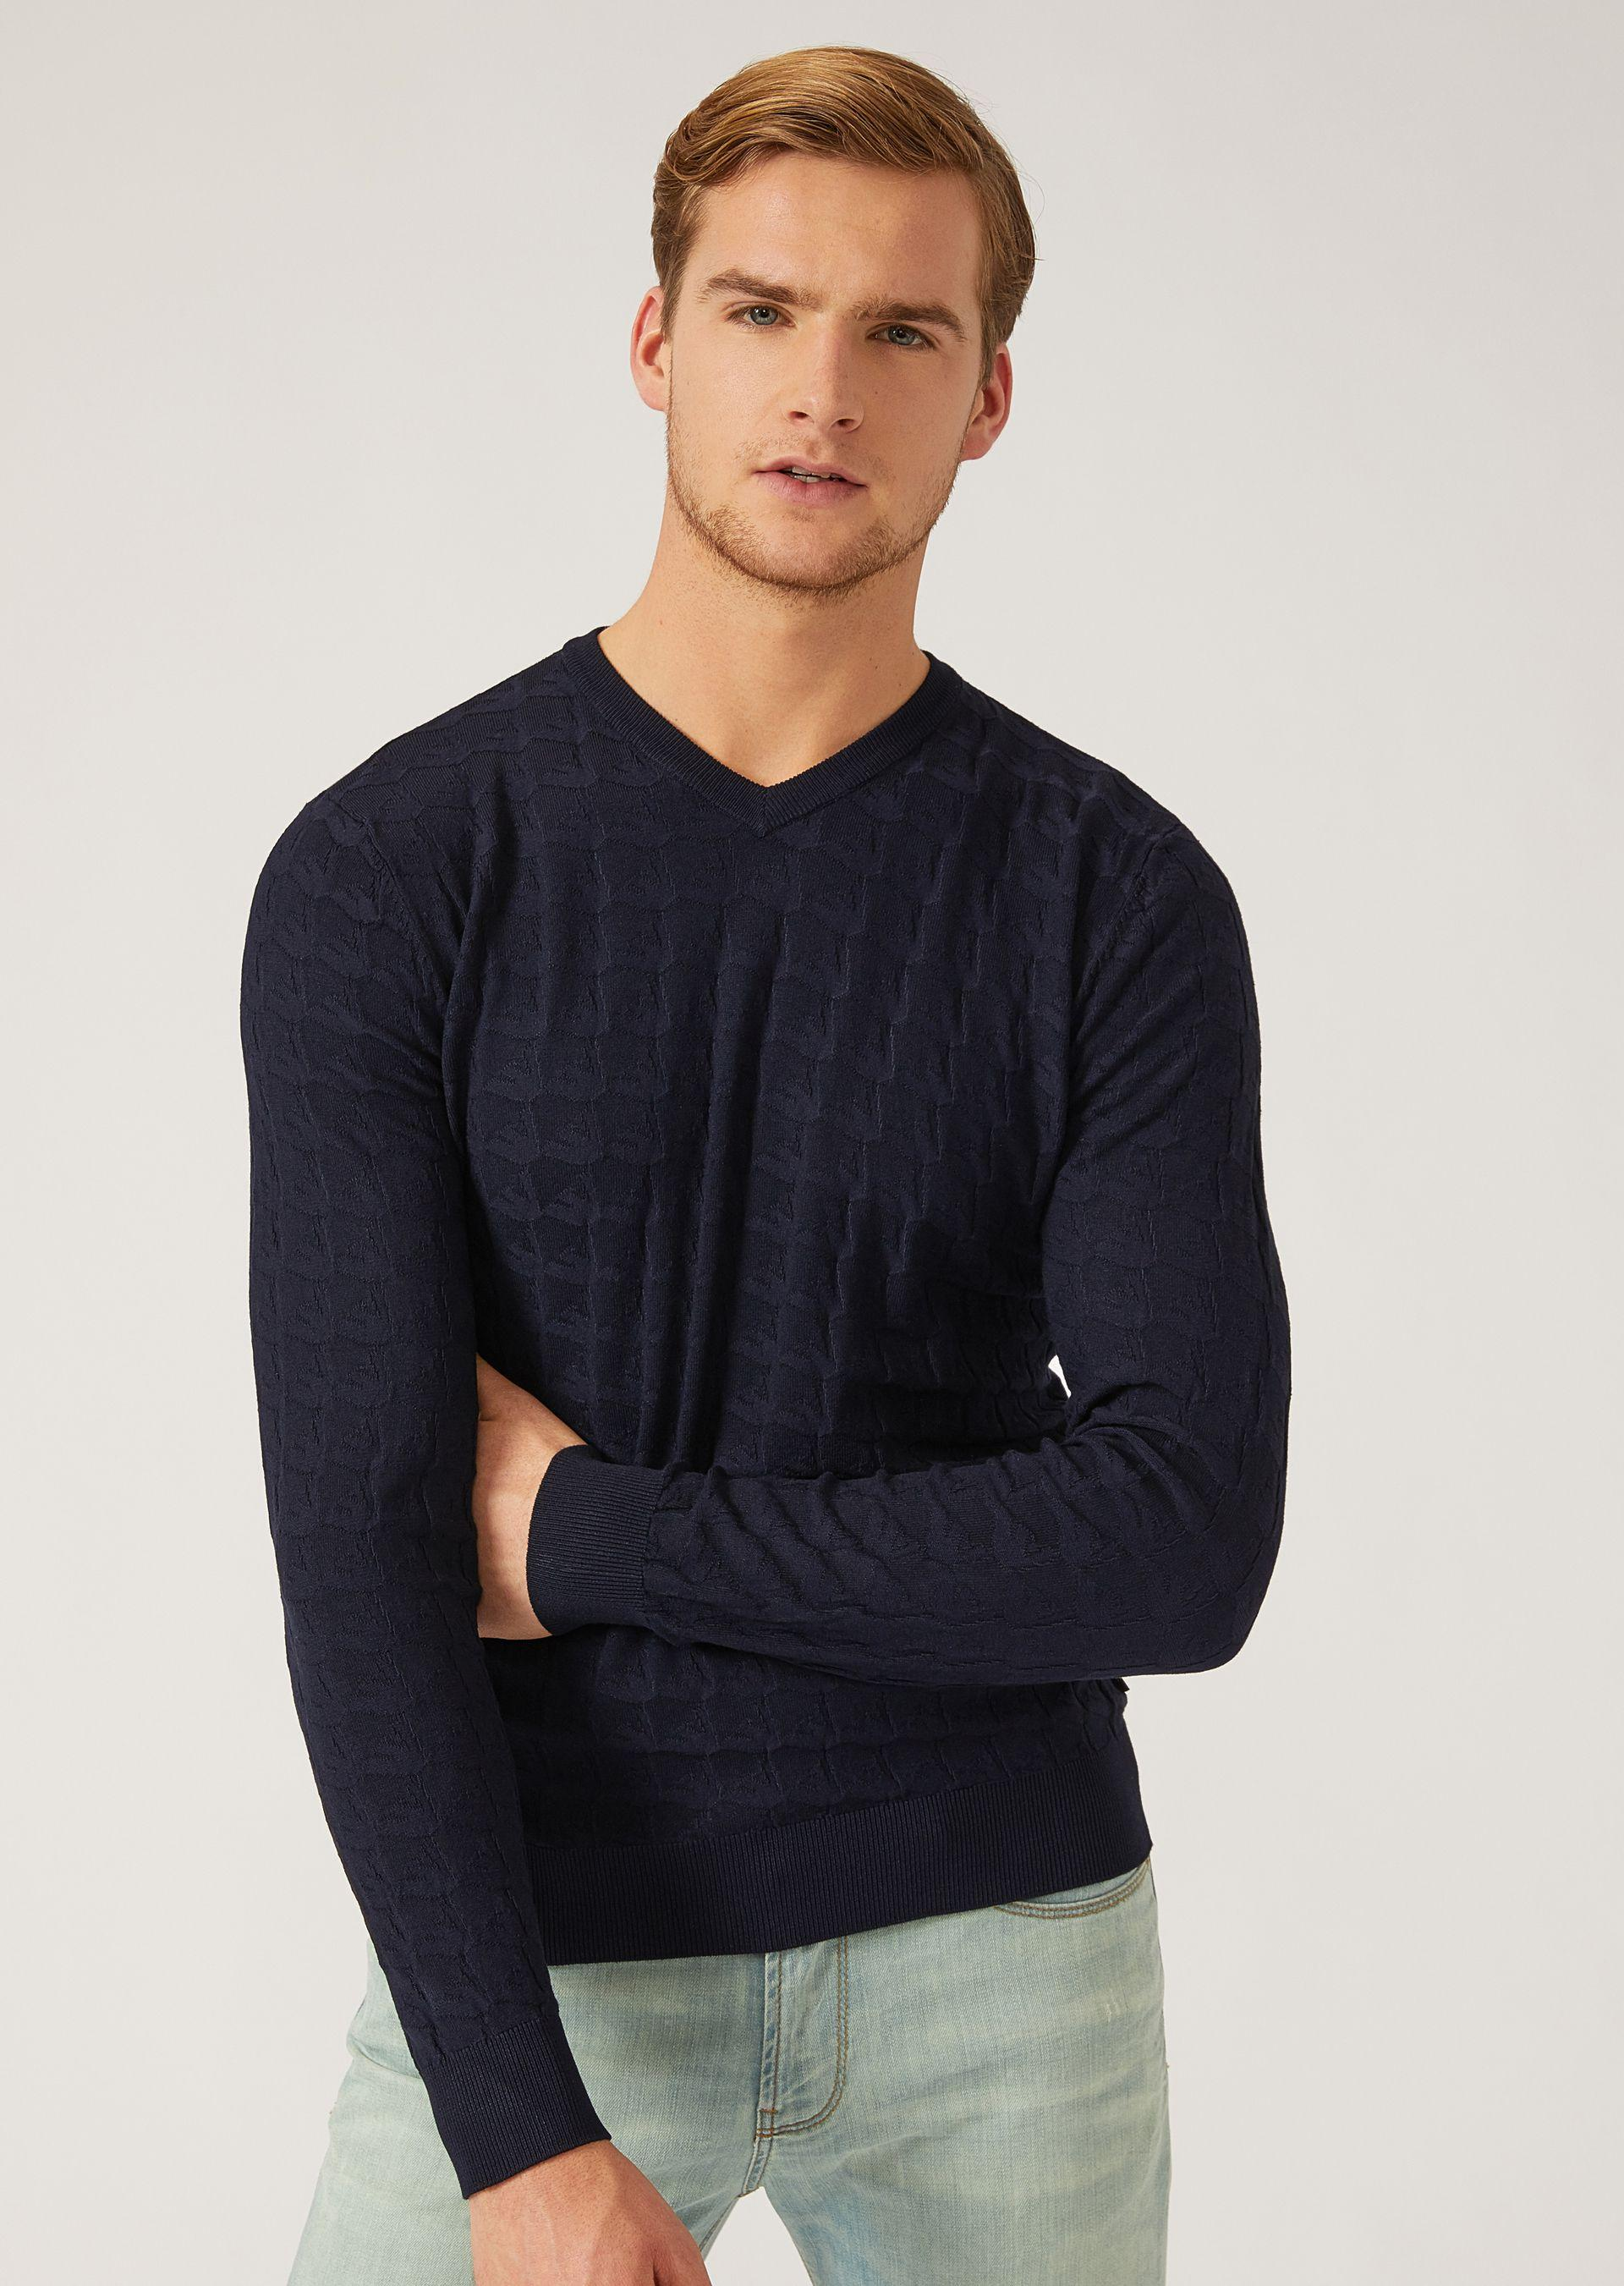 Emporio Armani Sweaters - Item 39836404 In Navy Blue